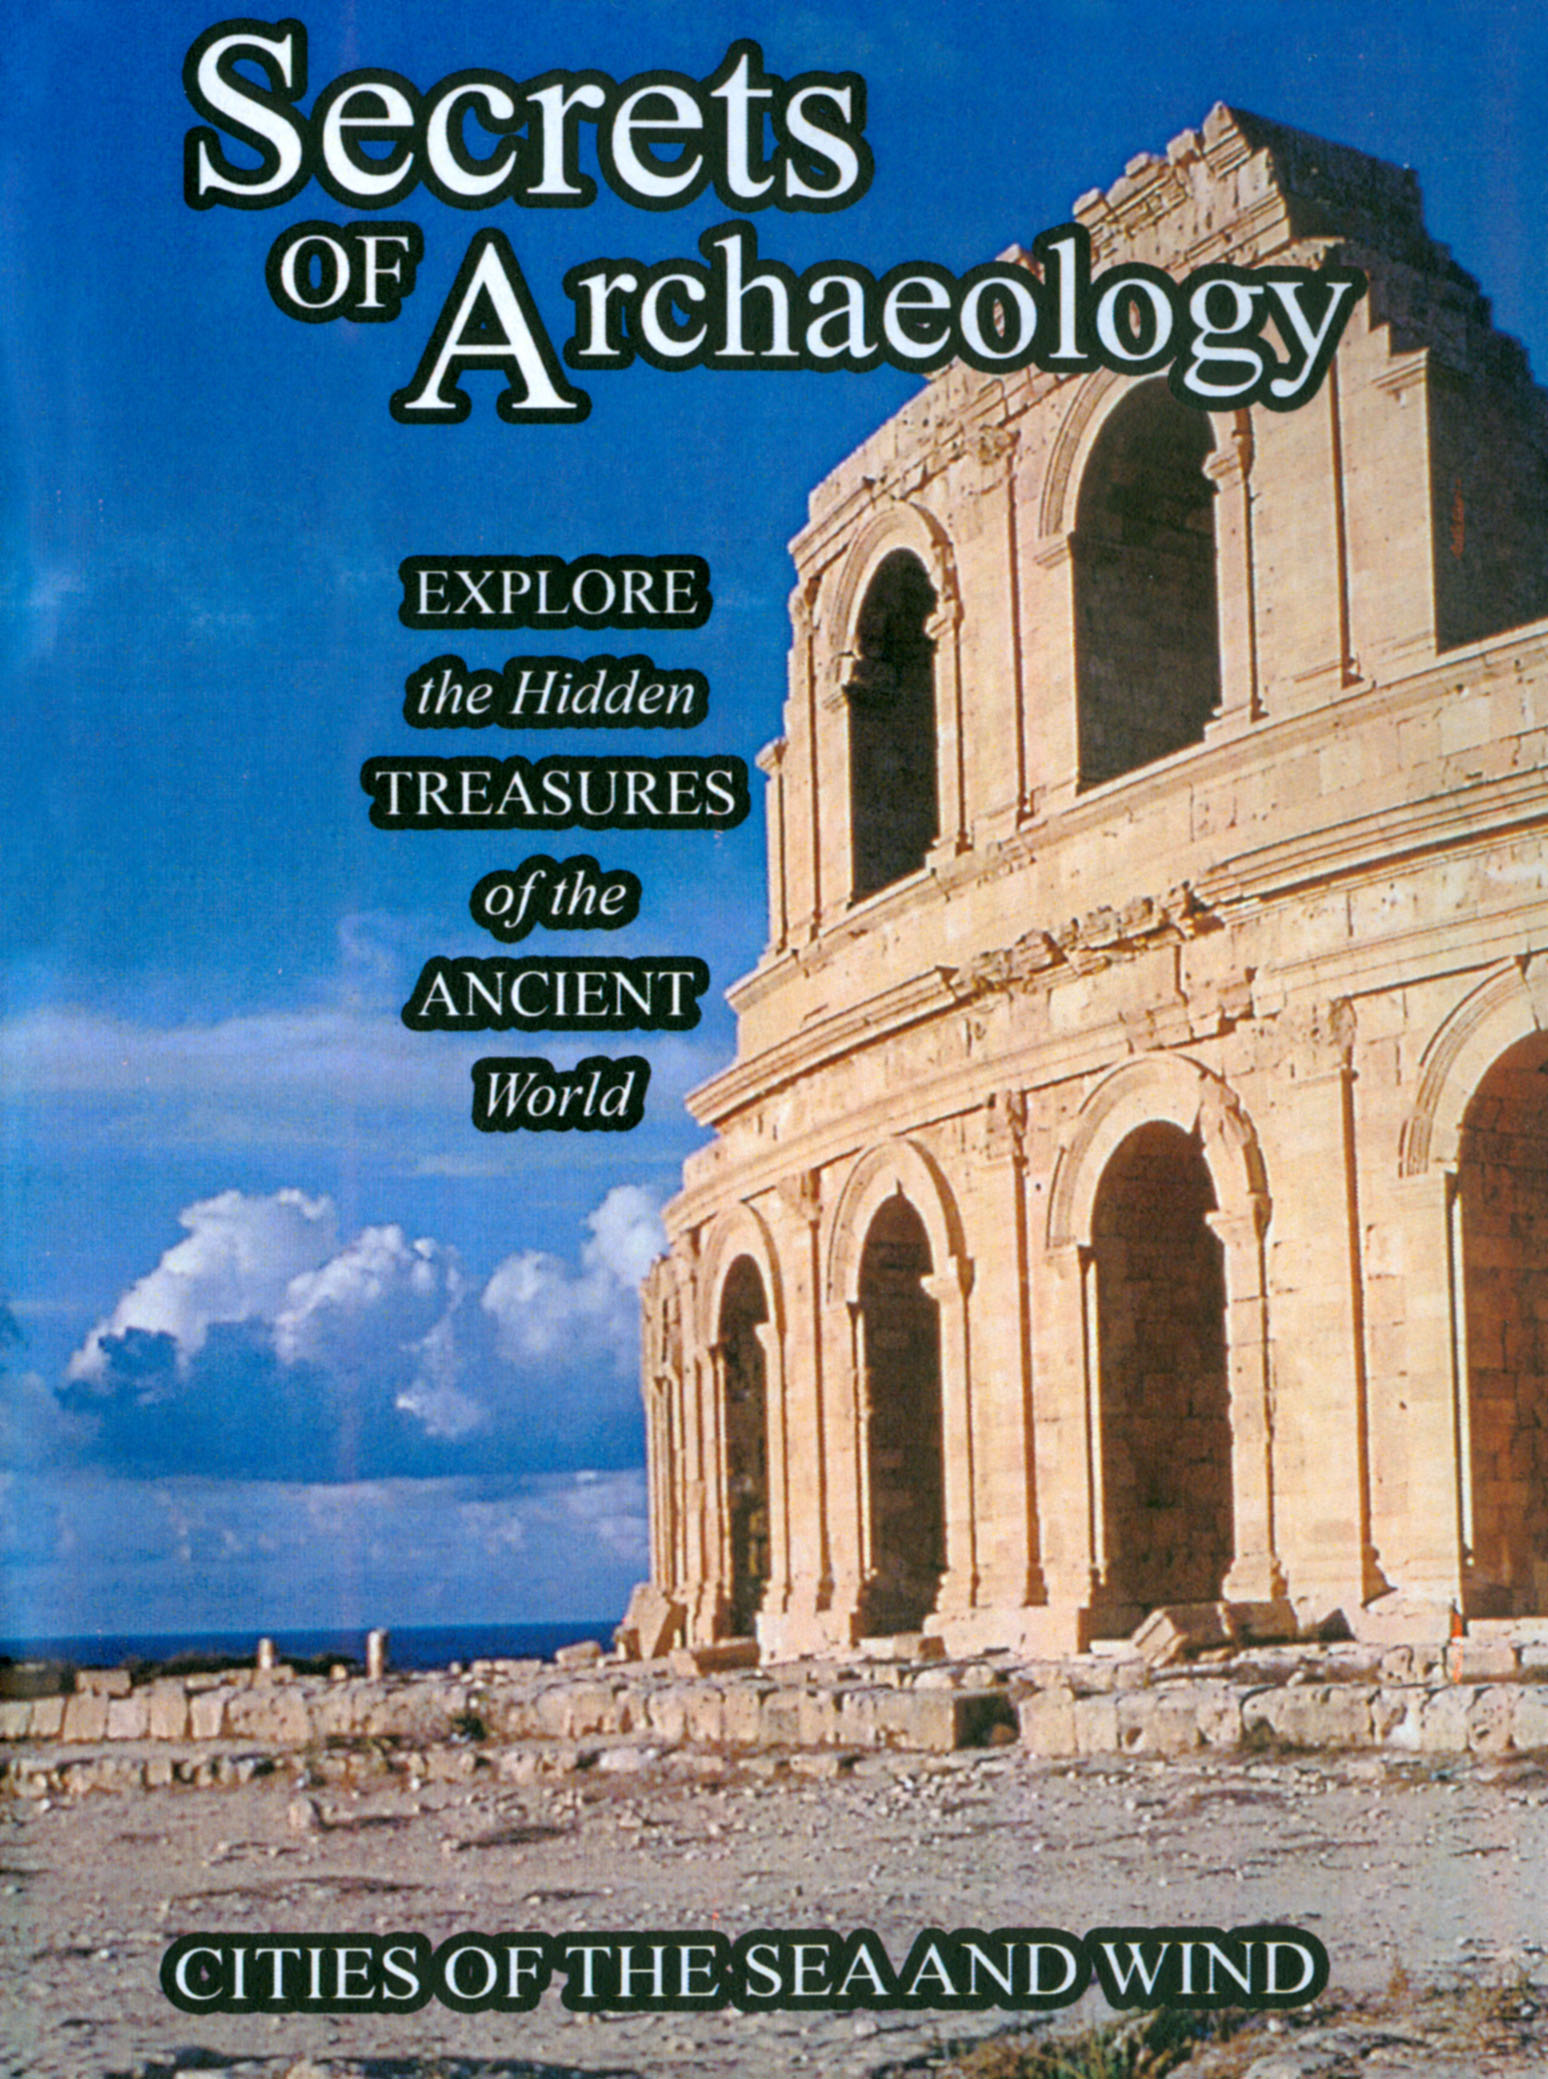 Secrets of Archaeology: Cities of the Sea and Wind